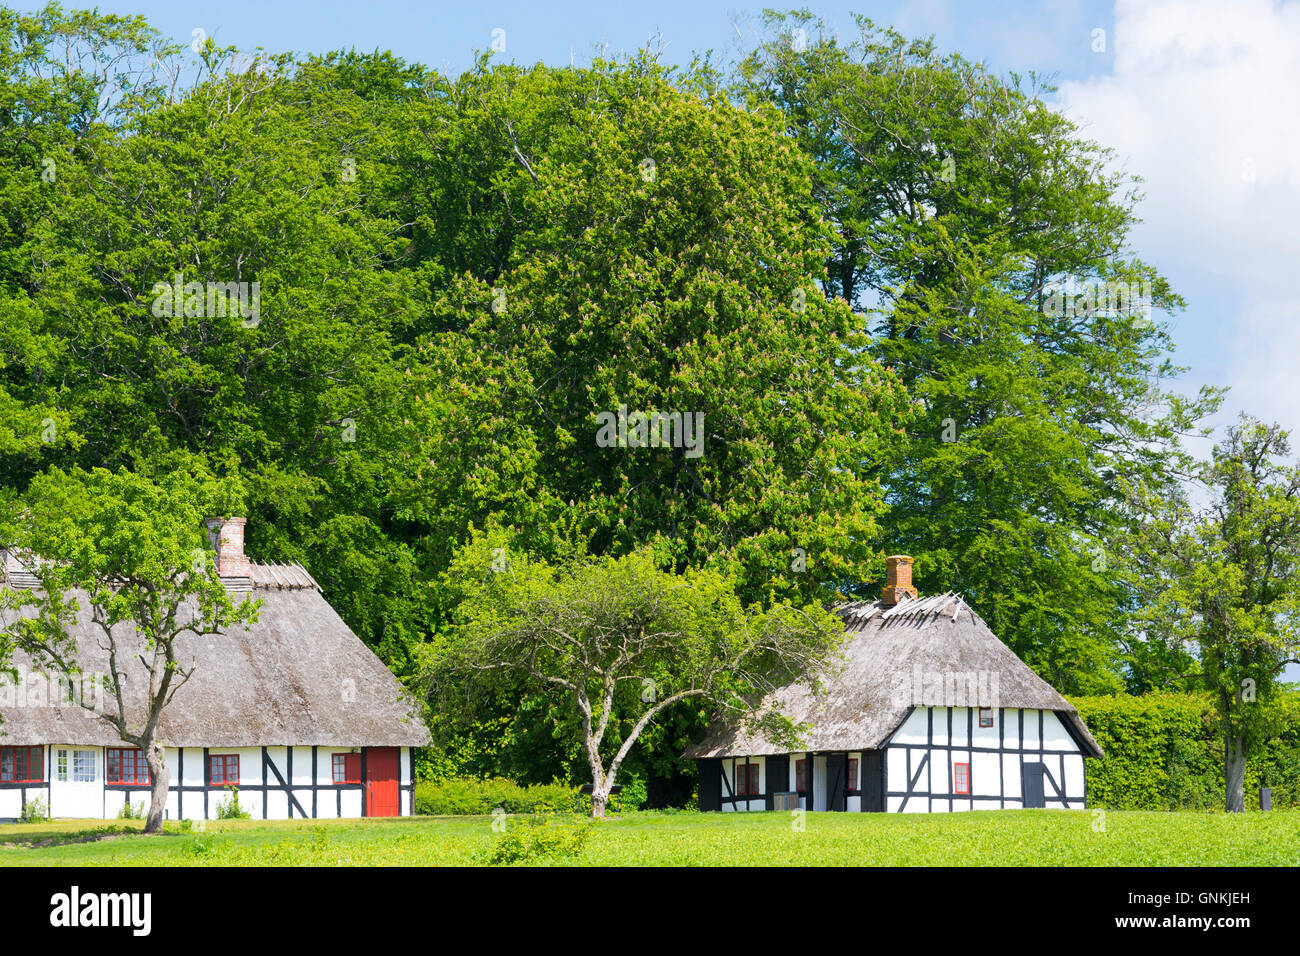 Quaint traditional half-timbered thatch cottages at Egeskov in south of the island of Funen, Denmark - Stock Image